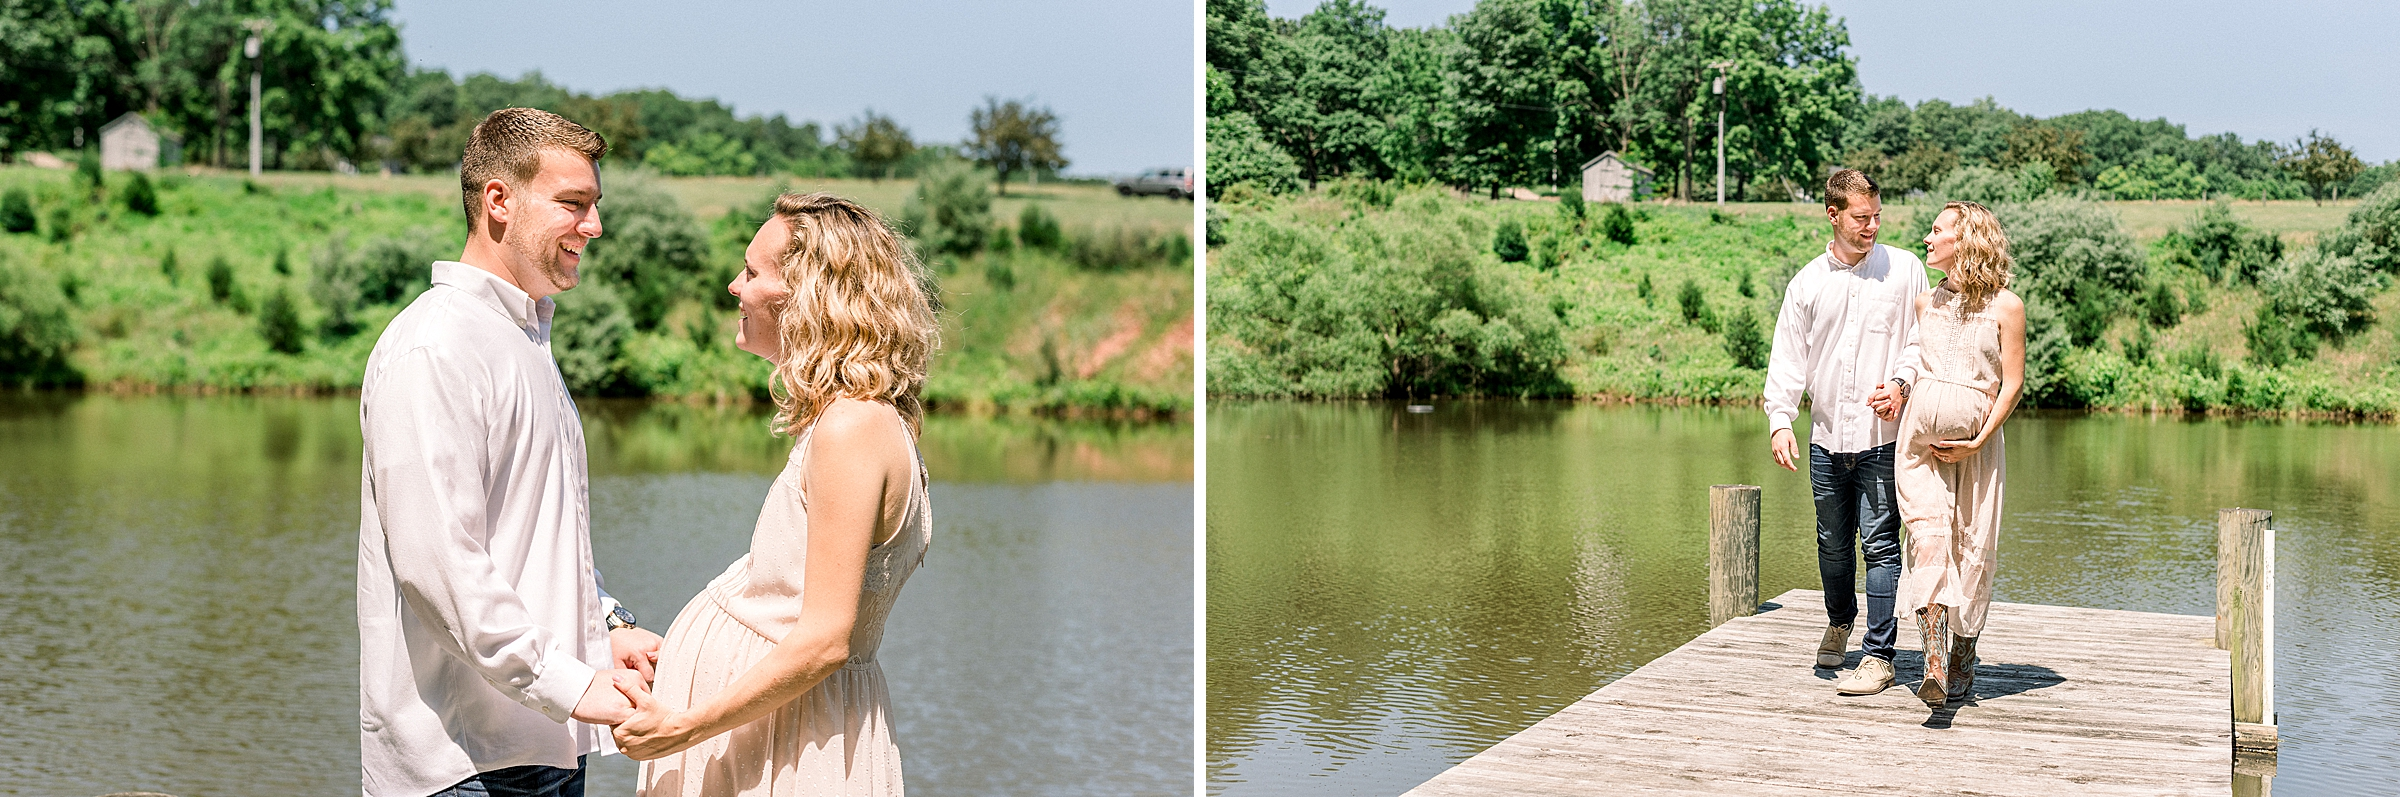 Rustic maternity photoshoot in New Jersey